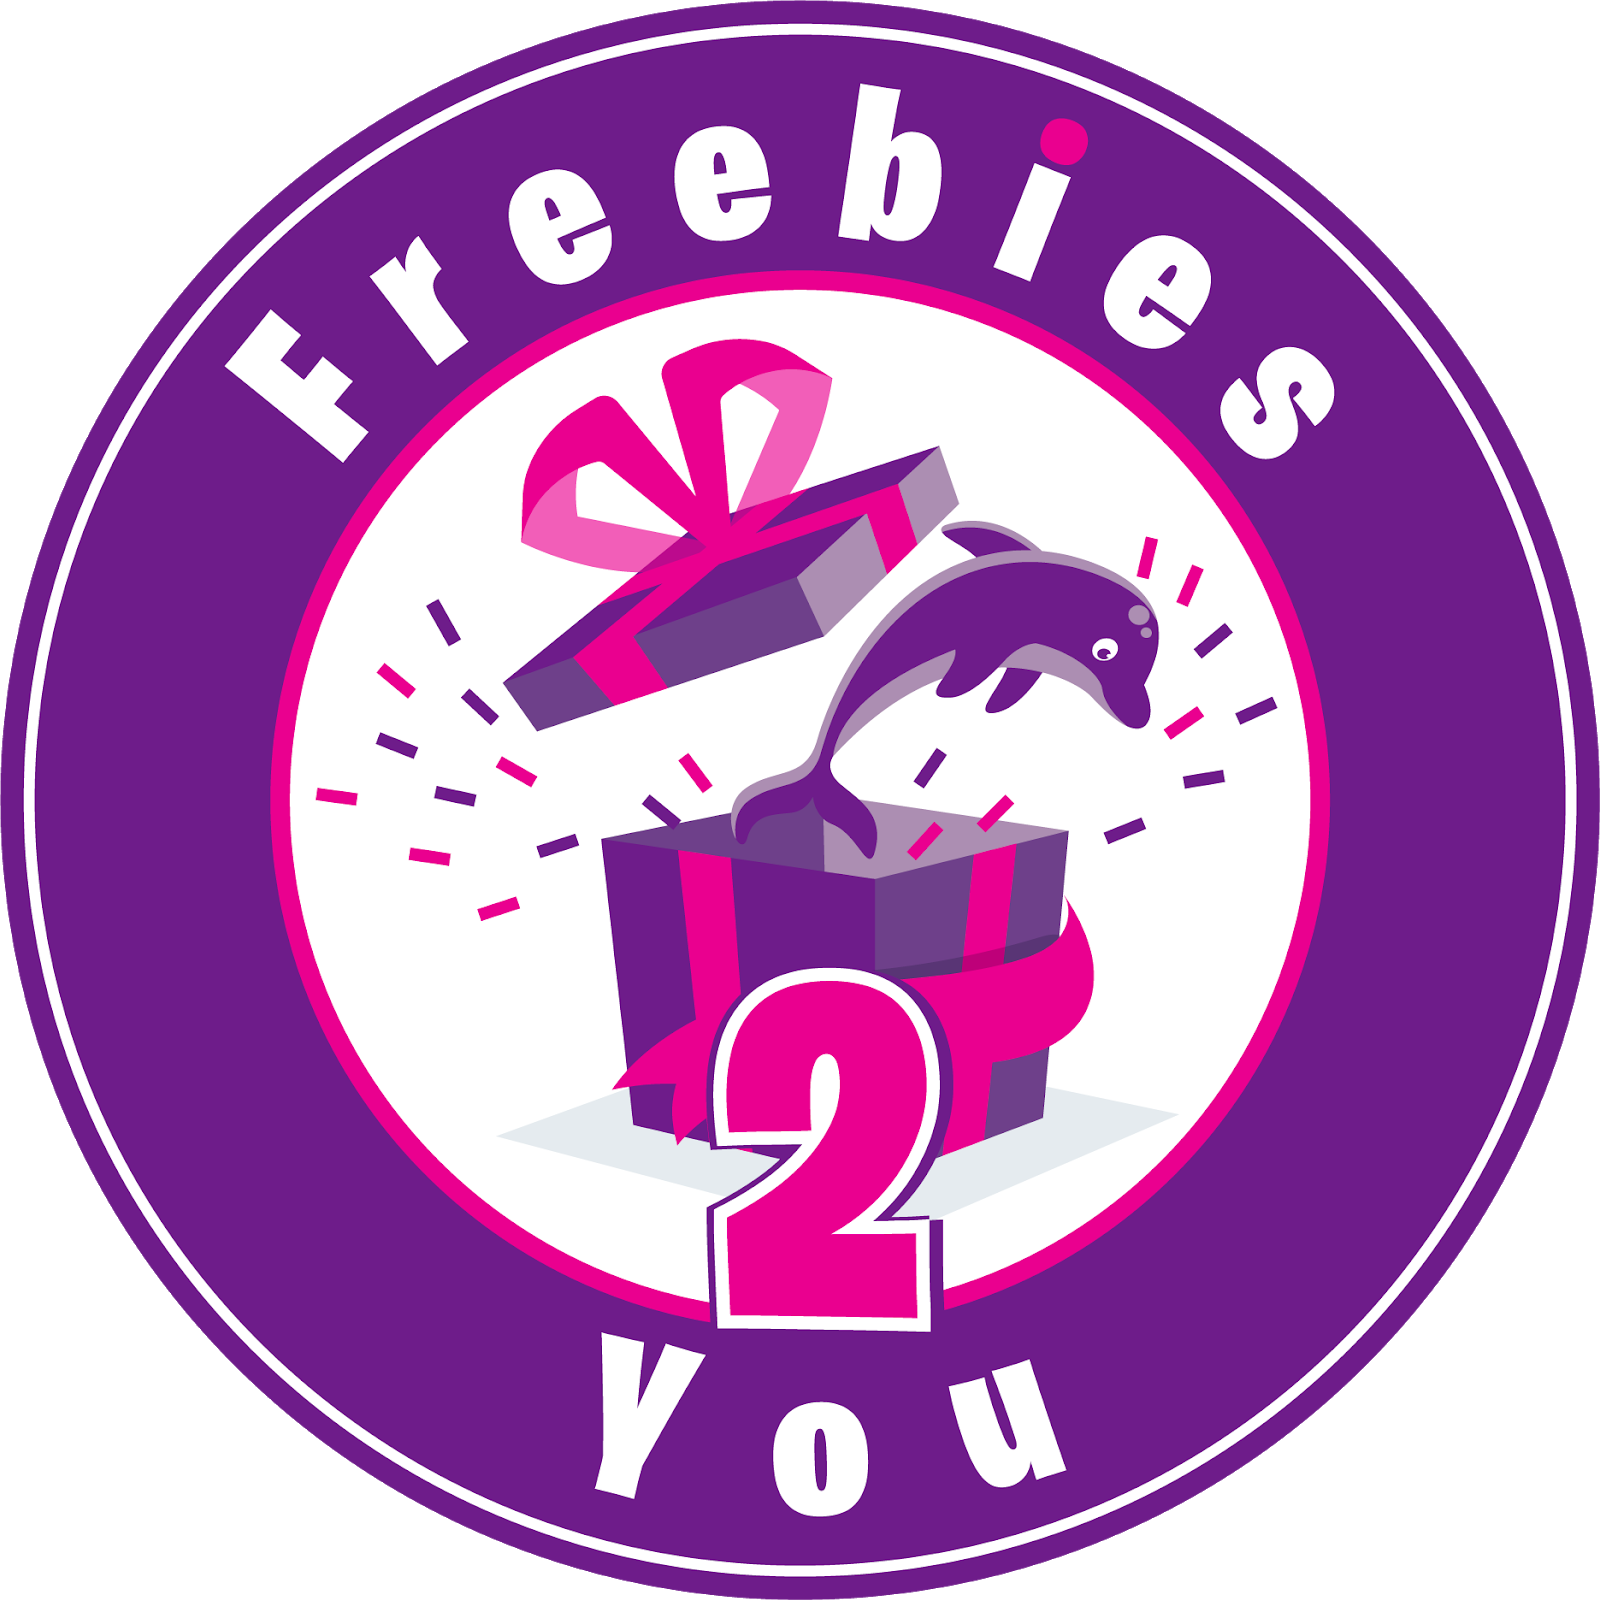 Free Samples by mail 2019 - Freebies2you.com